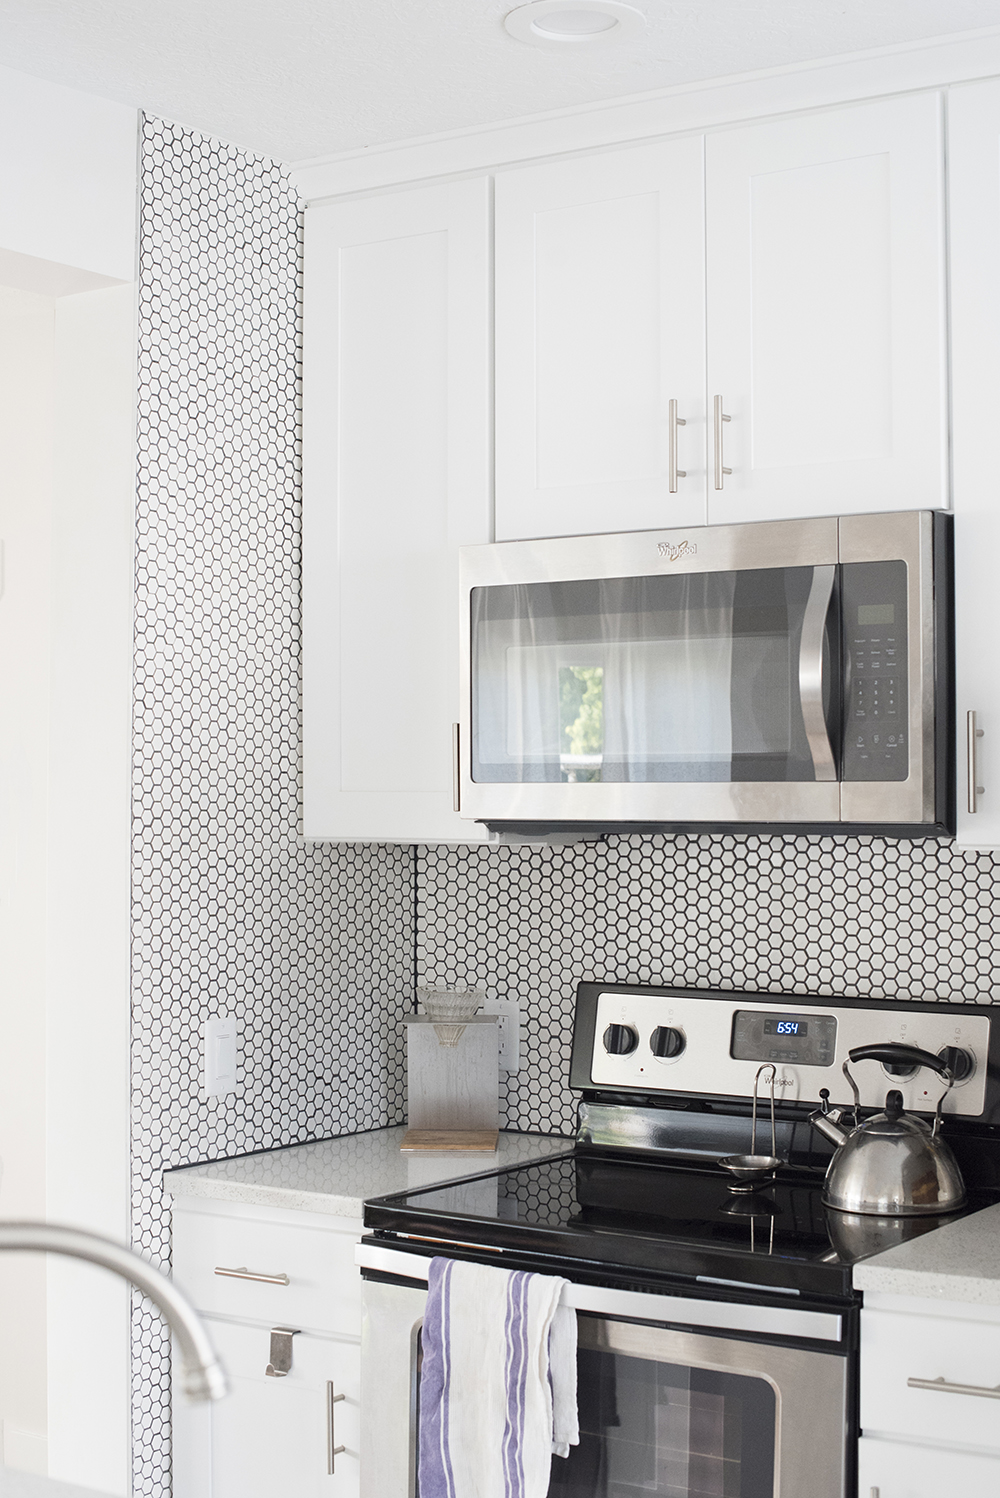 - White Hex Tile With Black Grout Backsplash - Room For Tuesday